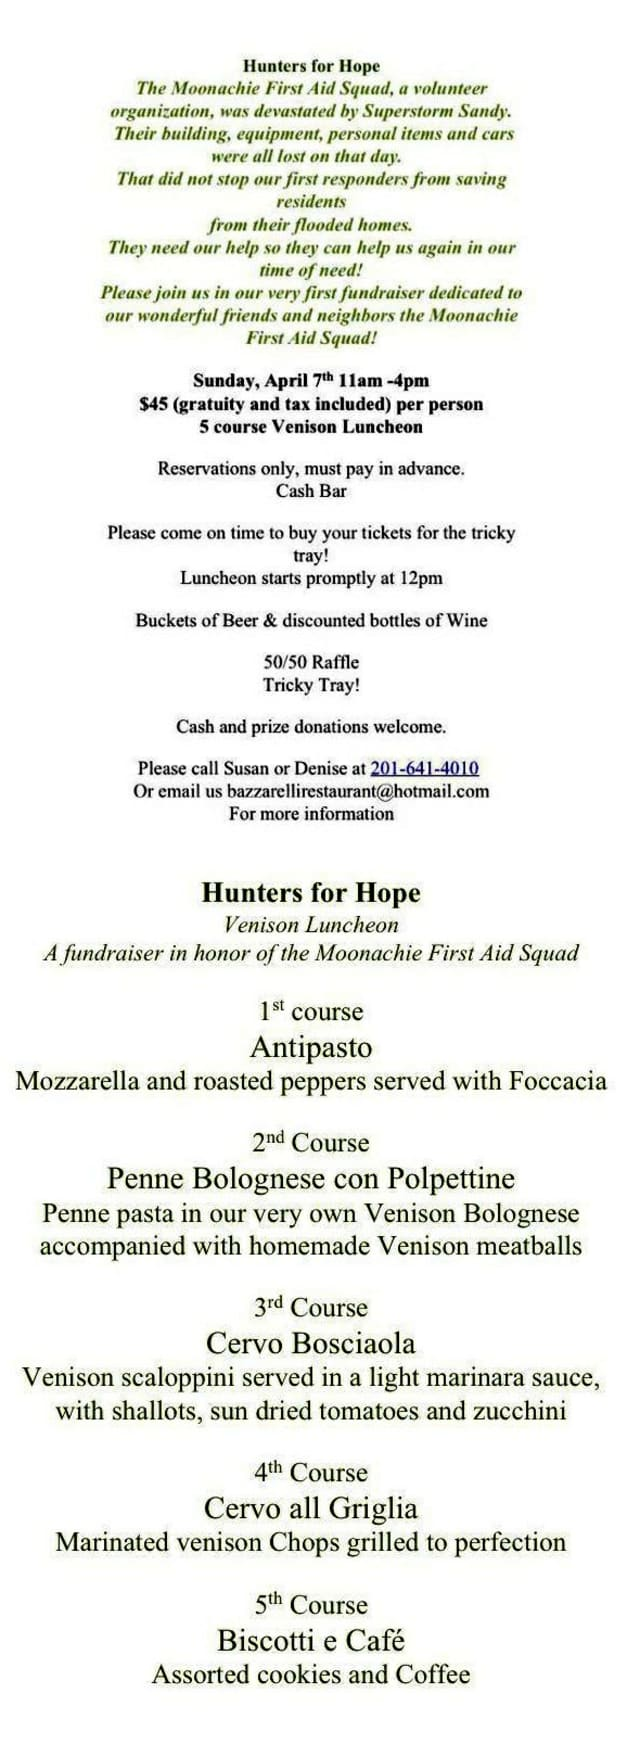 A special Sunday luncheon for the Moonachie First Aid Squad